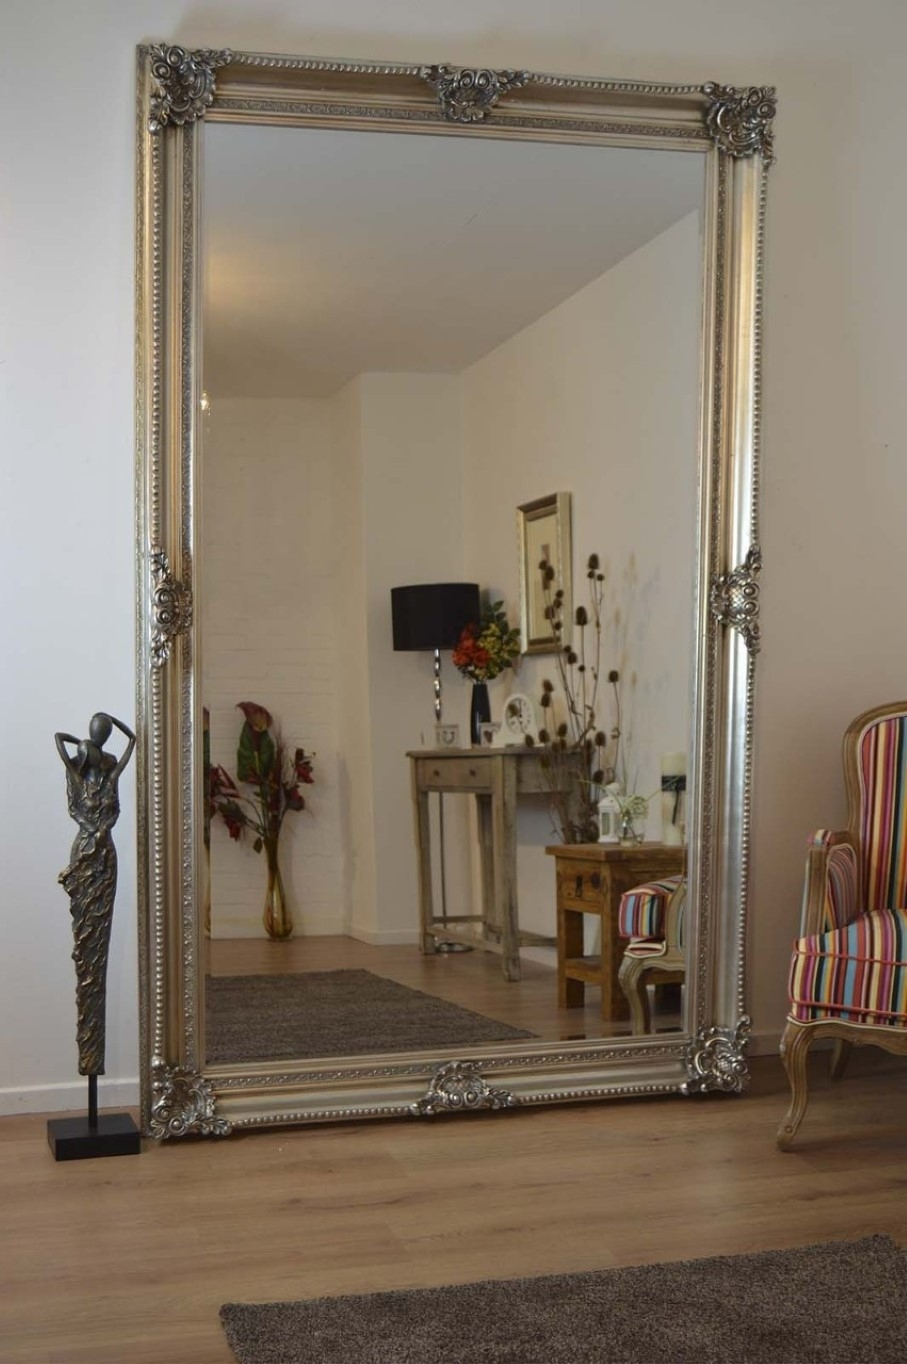 Fine Decoration Huge Wall Mirror Cozy Design Silver Ornate Huge Intended For Big Ornate Mirrors (Image 6 of 15)